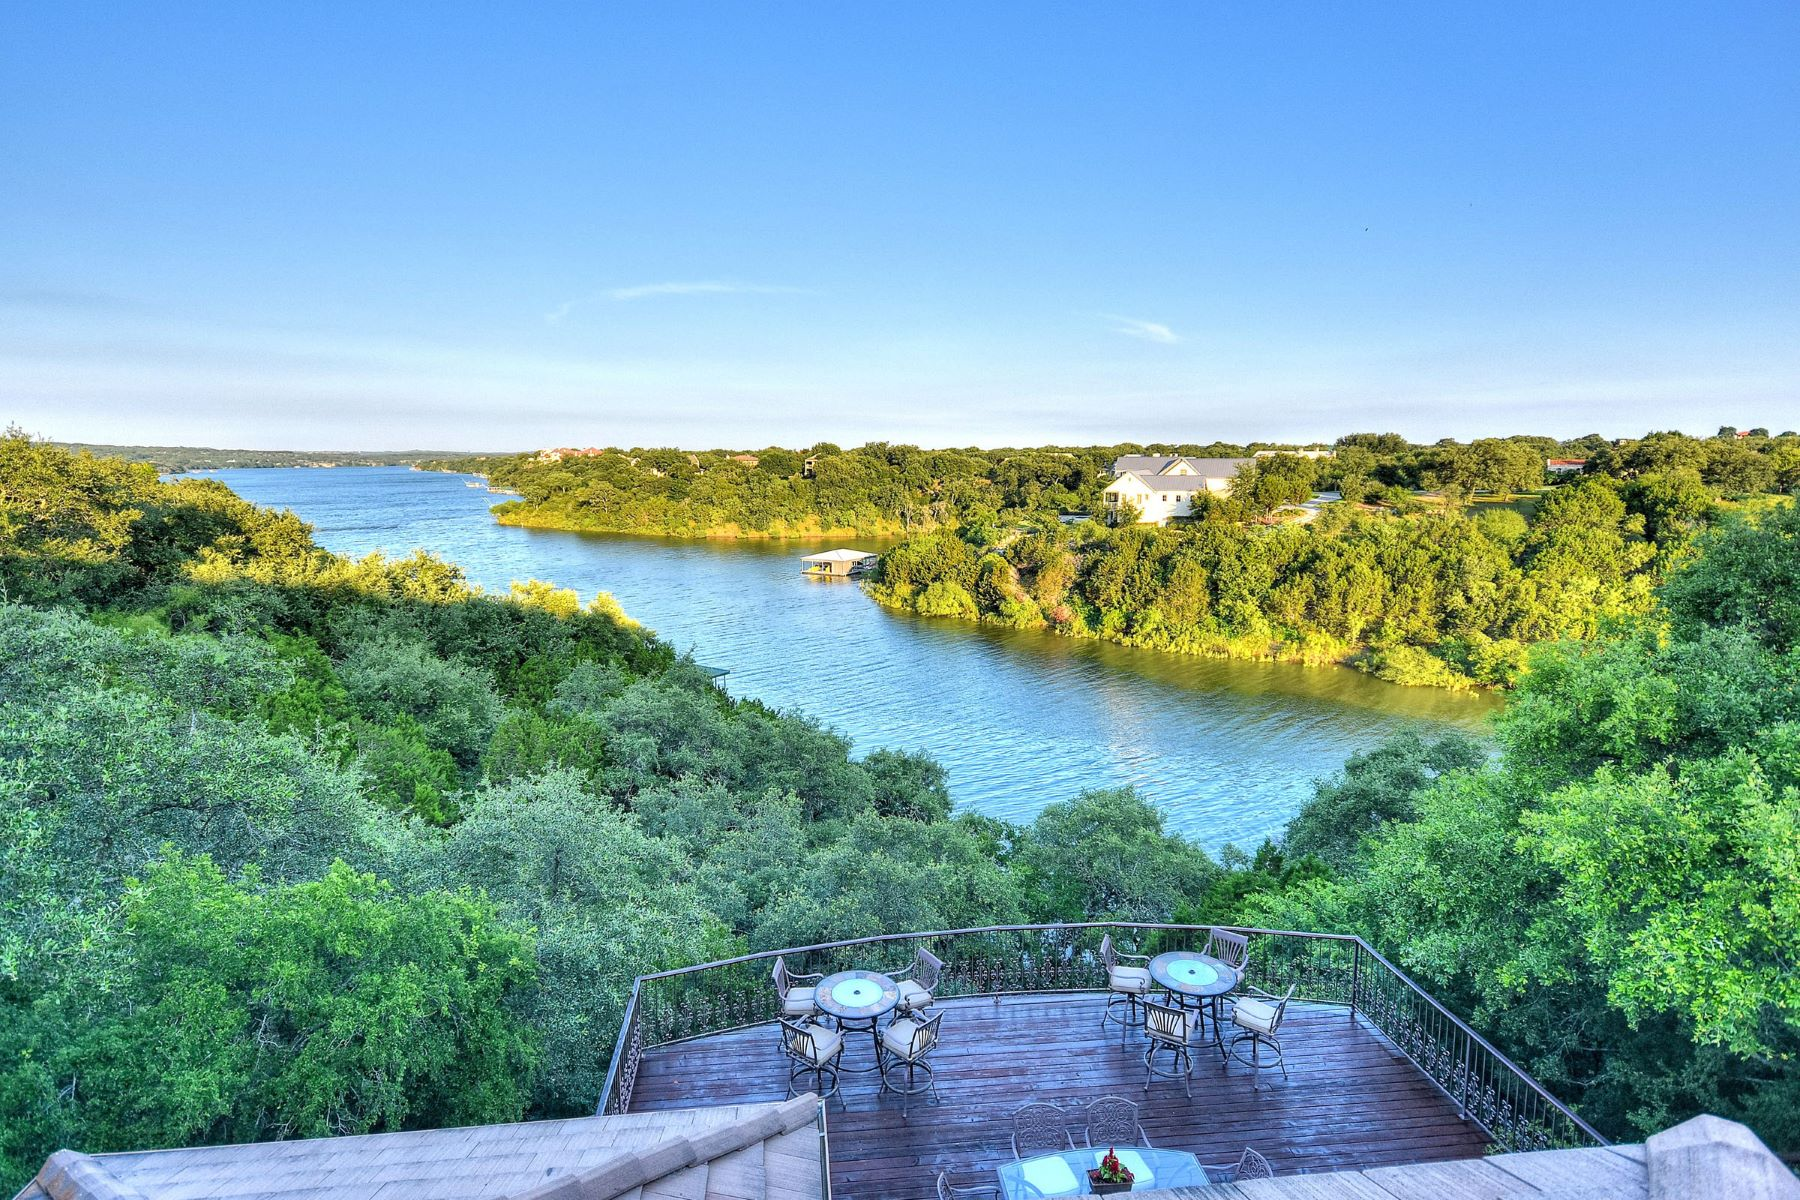 Maison unifamiliale pour l Vente à The Ideal Lakeside Retreat 2703 Sailboat PASS Spicewood, Texas, 78669 États-Unis